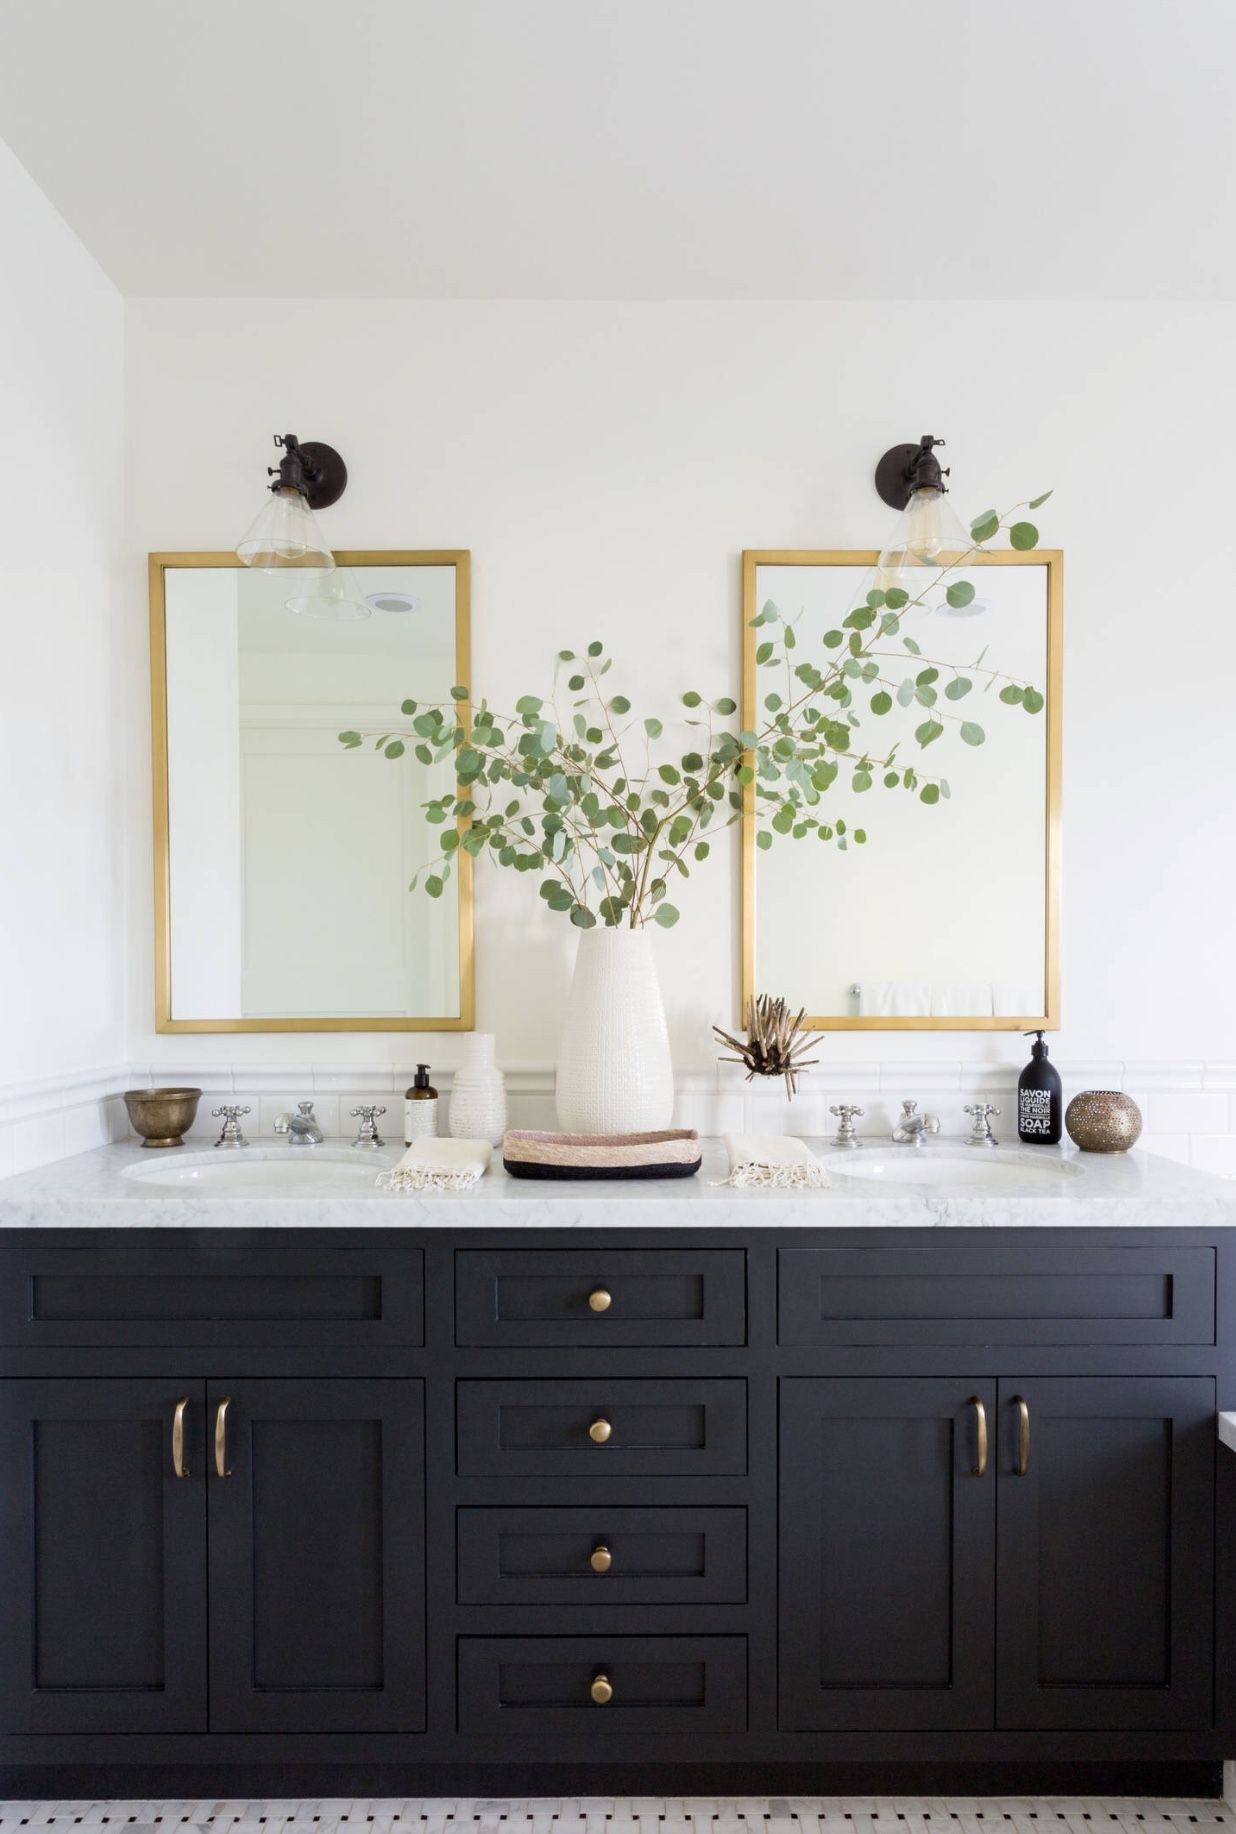 Pin by briana tahan on home pinterest bath spaces and house